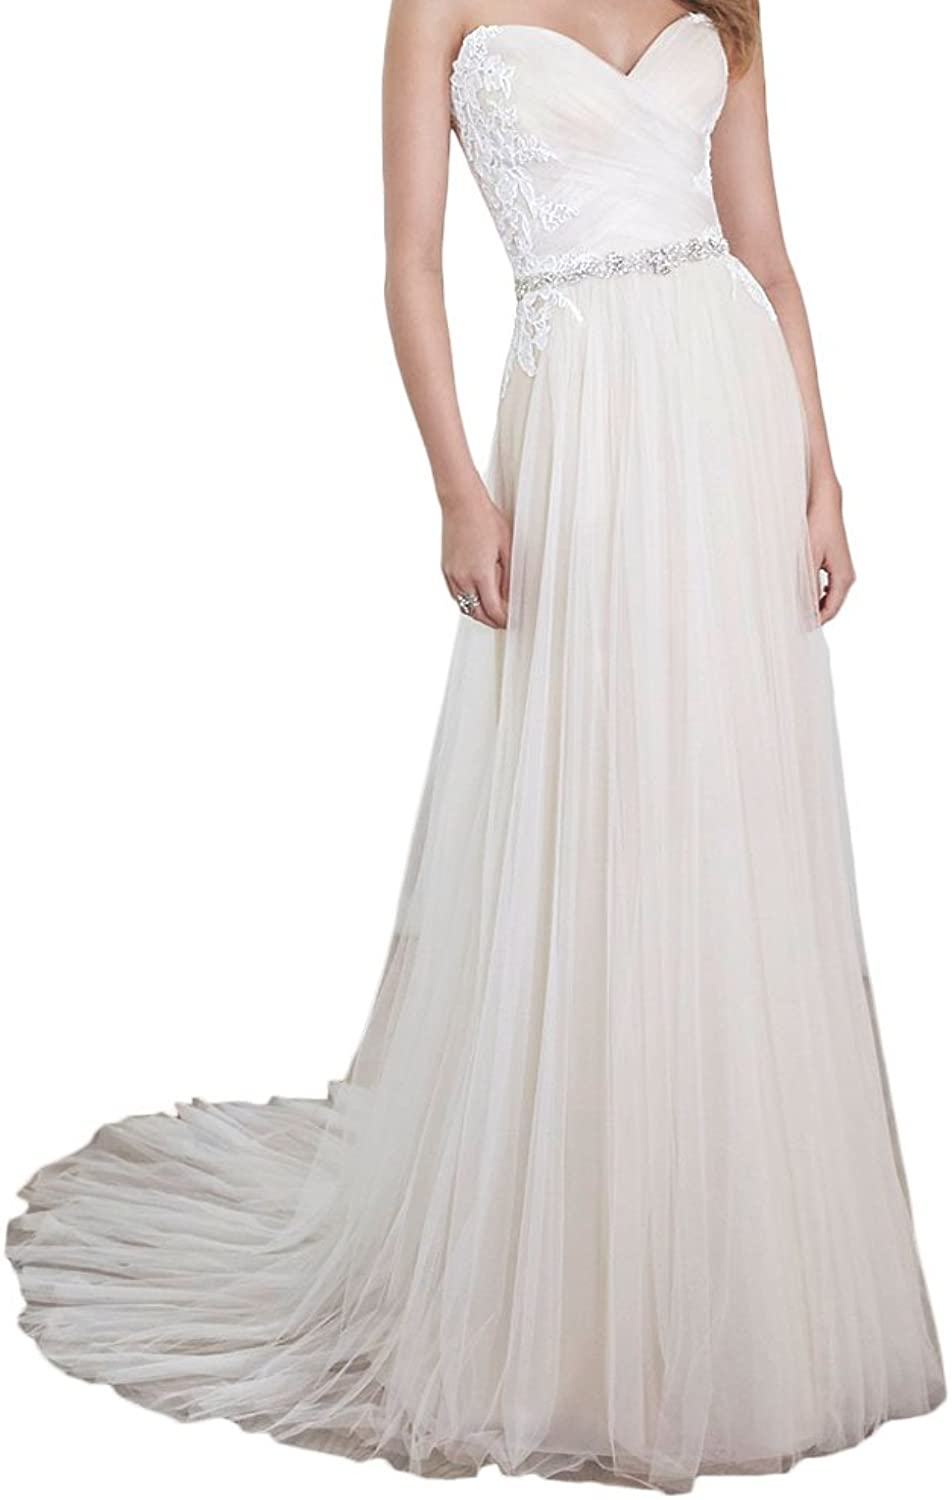 Alexzendra Simple Wedding Dress For Bride 2017 Tulle A Line Wedding Dress Plus Size With Belt White Applique